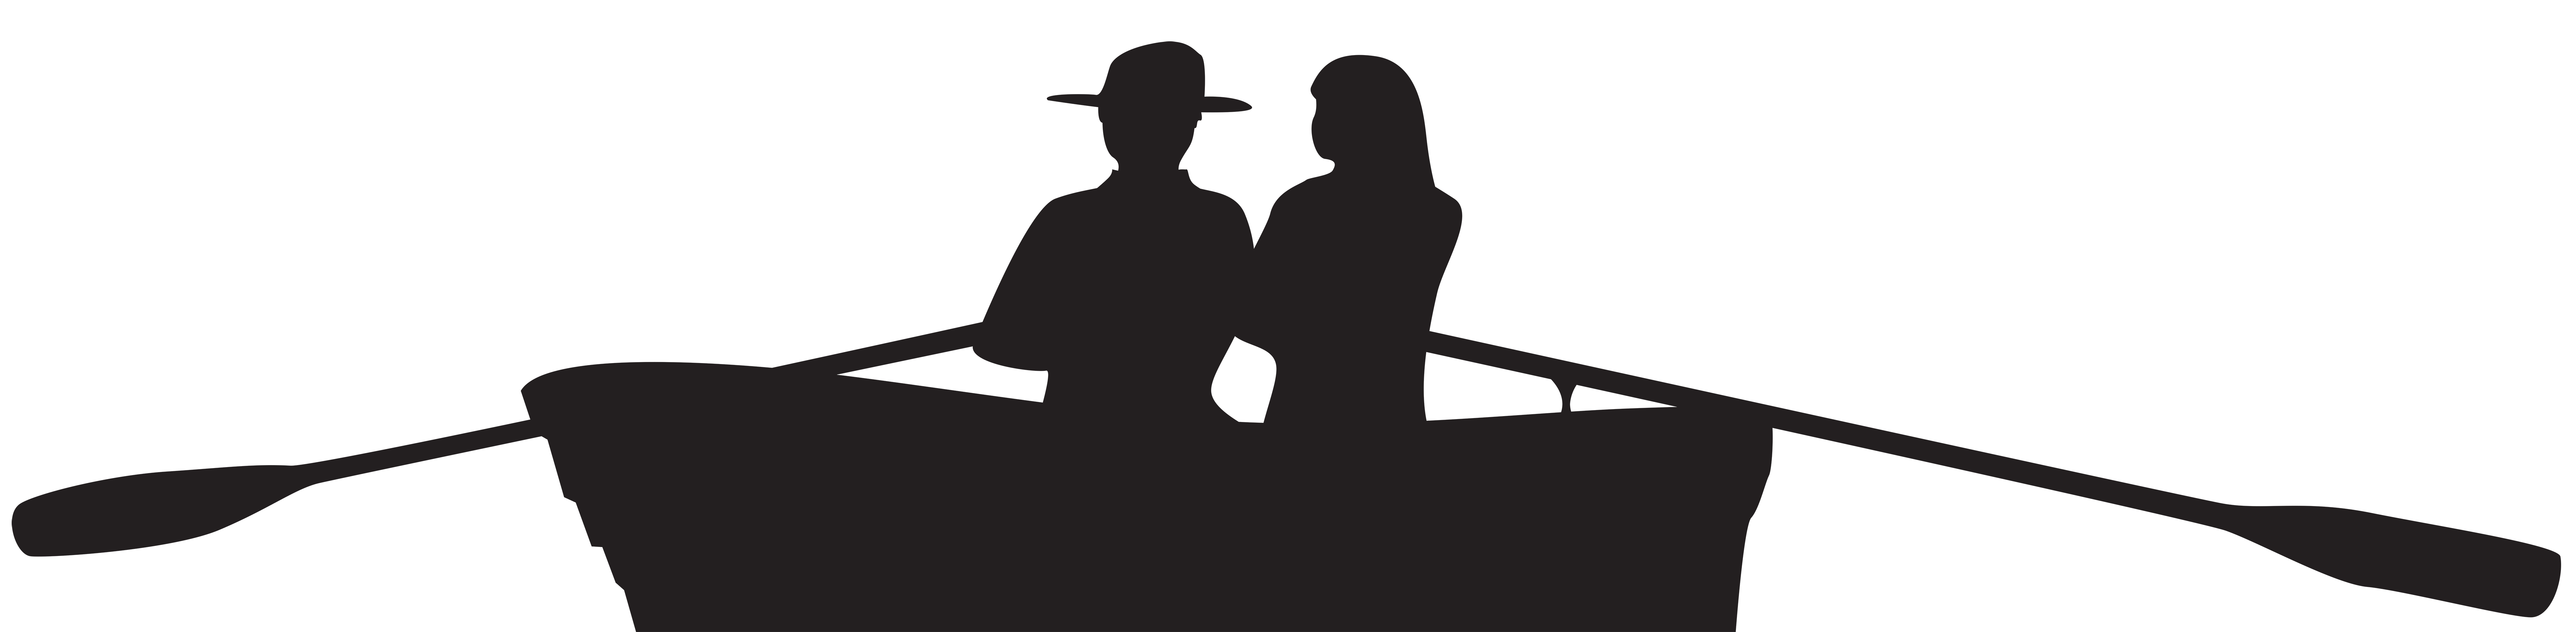 Couple clipart transparent PNG Art full Silhouette View